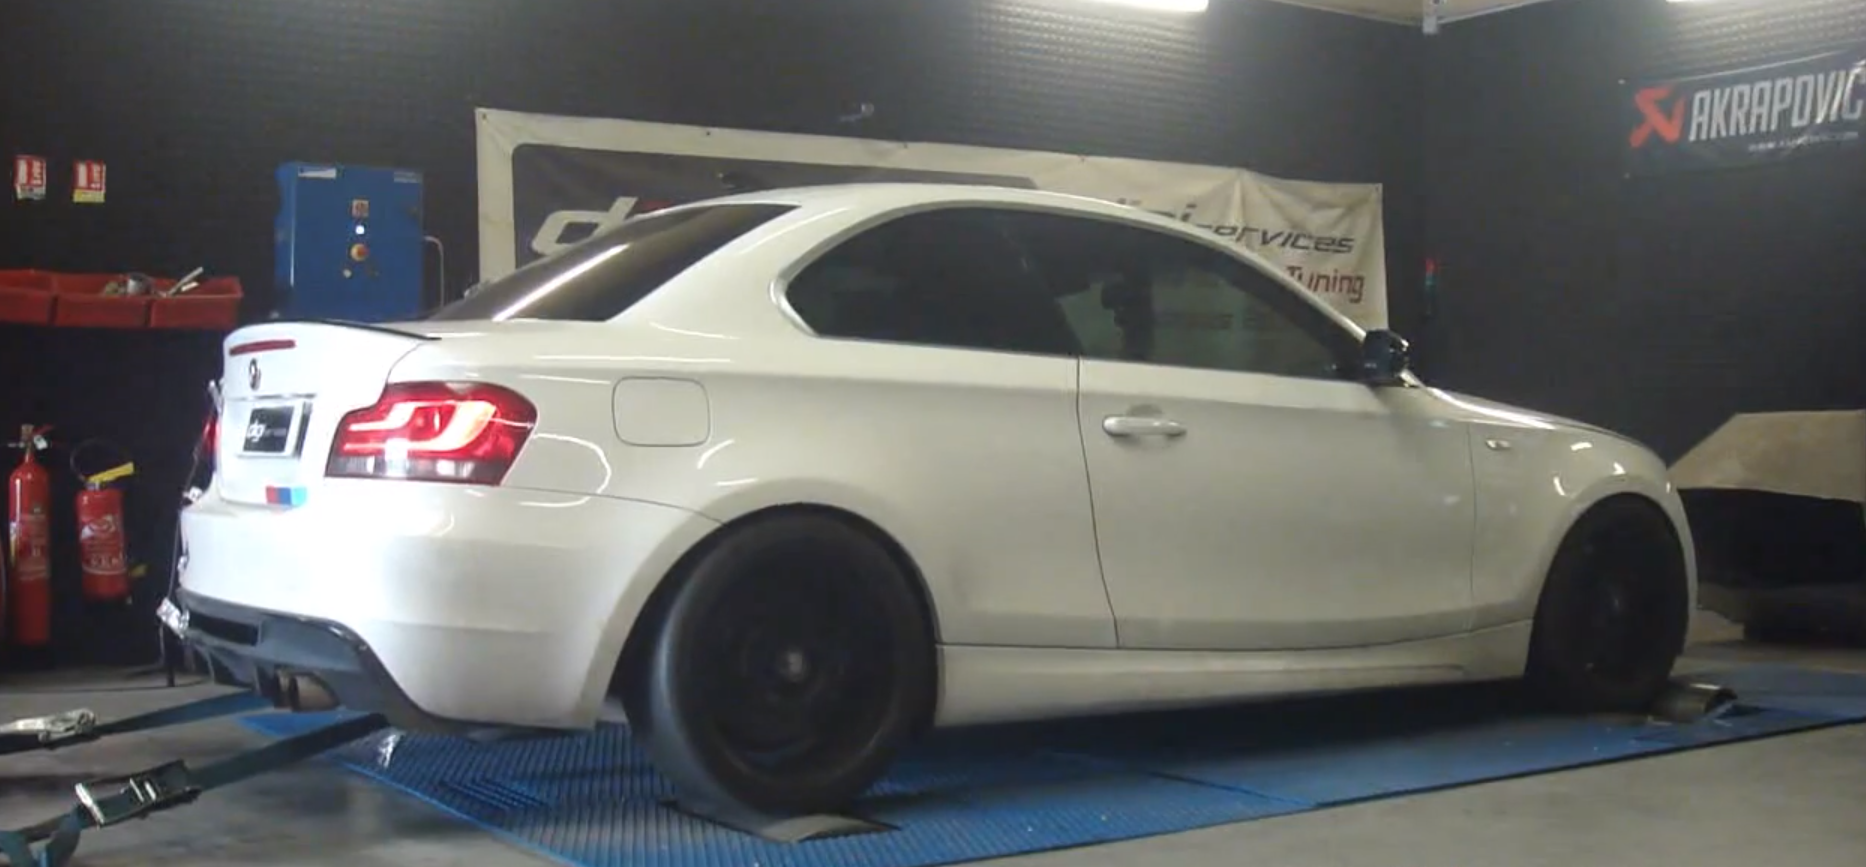 BMW I Goes Up To HP Thanks To A Stage Tune Seems - 135i bmw